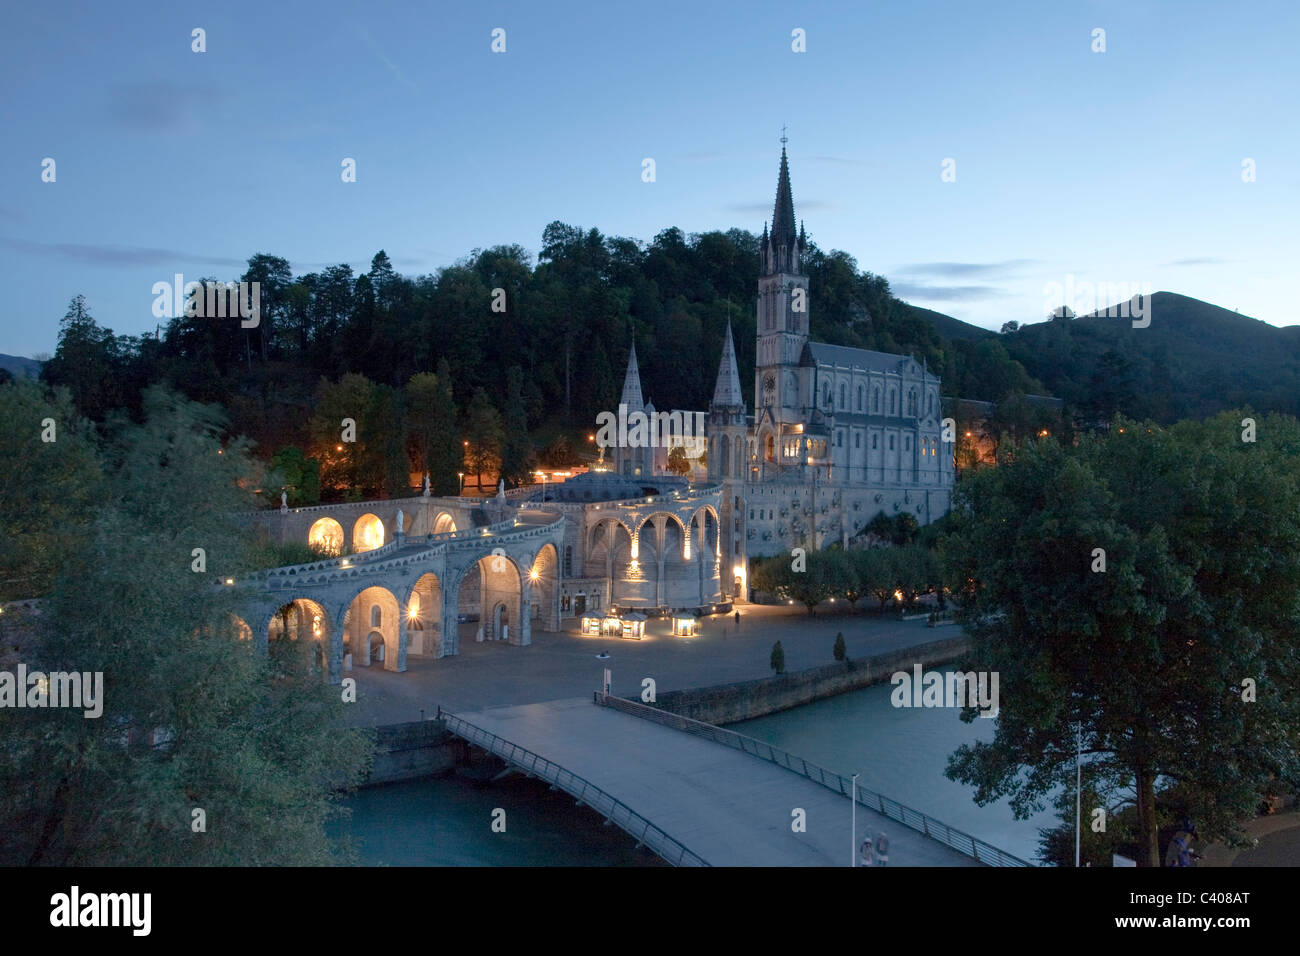 France, Europe, Lourdes, Pyrenees, religion, place of pilgrimage, Madonna, pray, religion - Stock Image